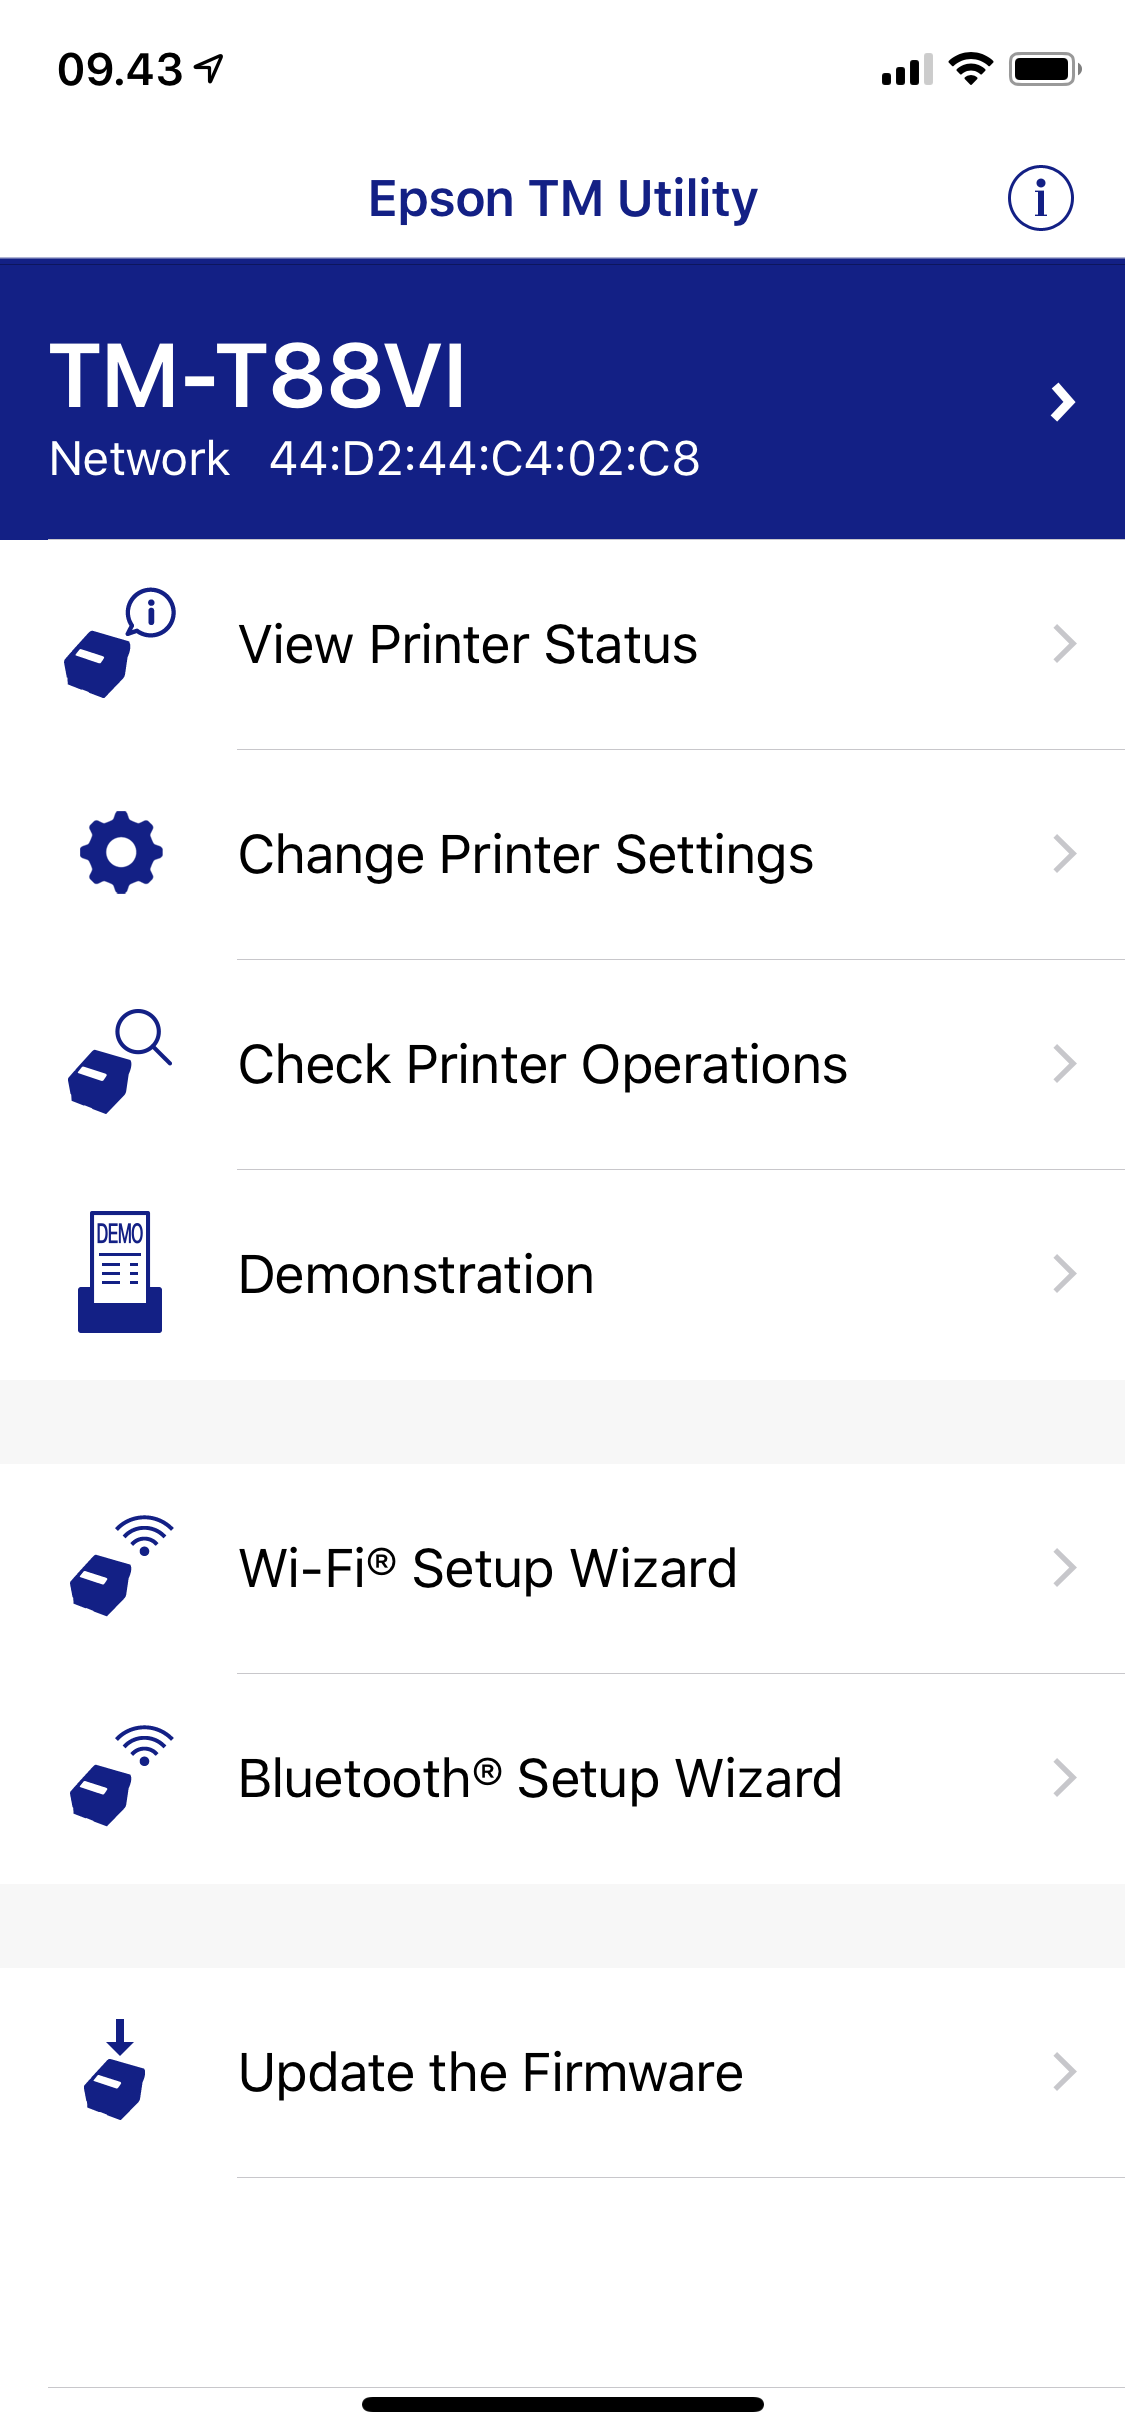 Epson TM-T88VI Firmware Update (From iOS) - NP Retail